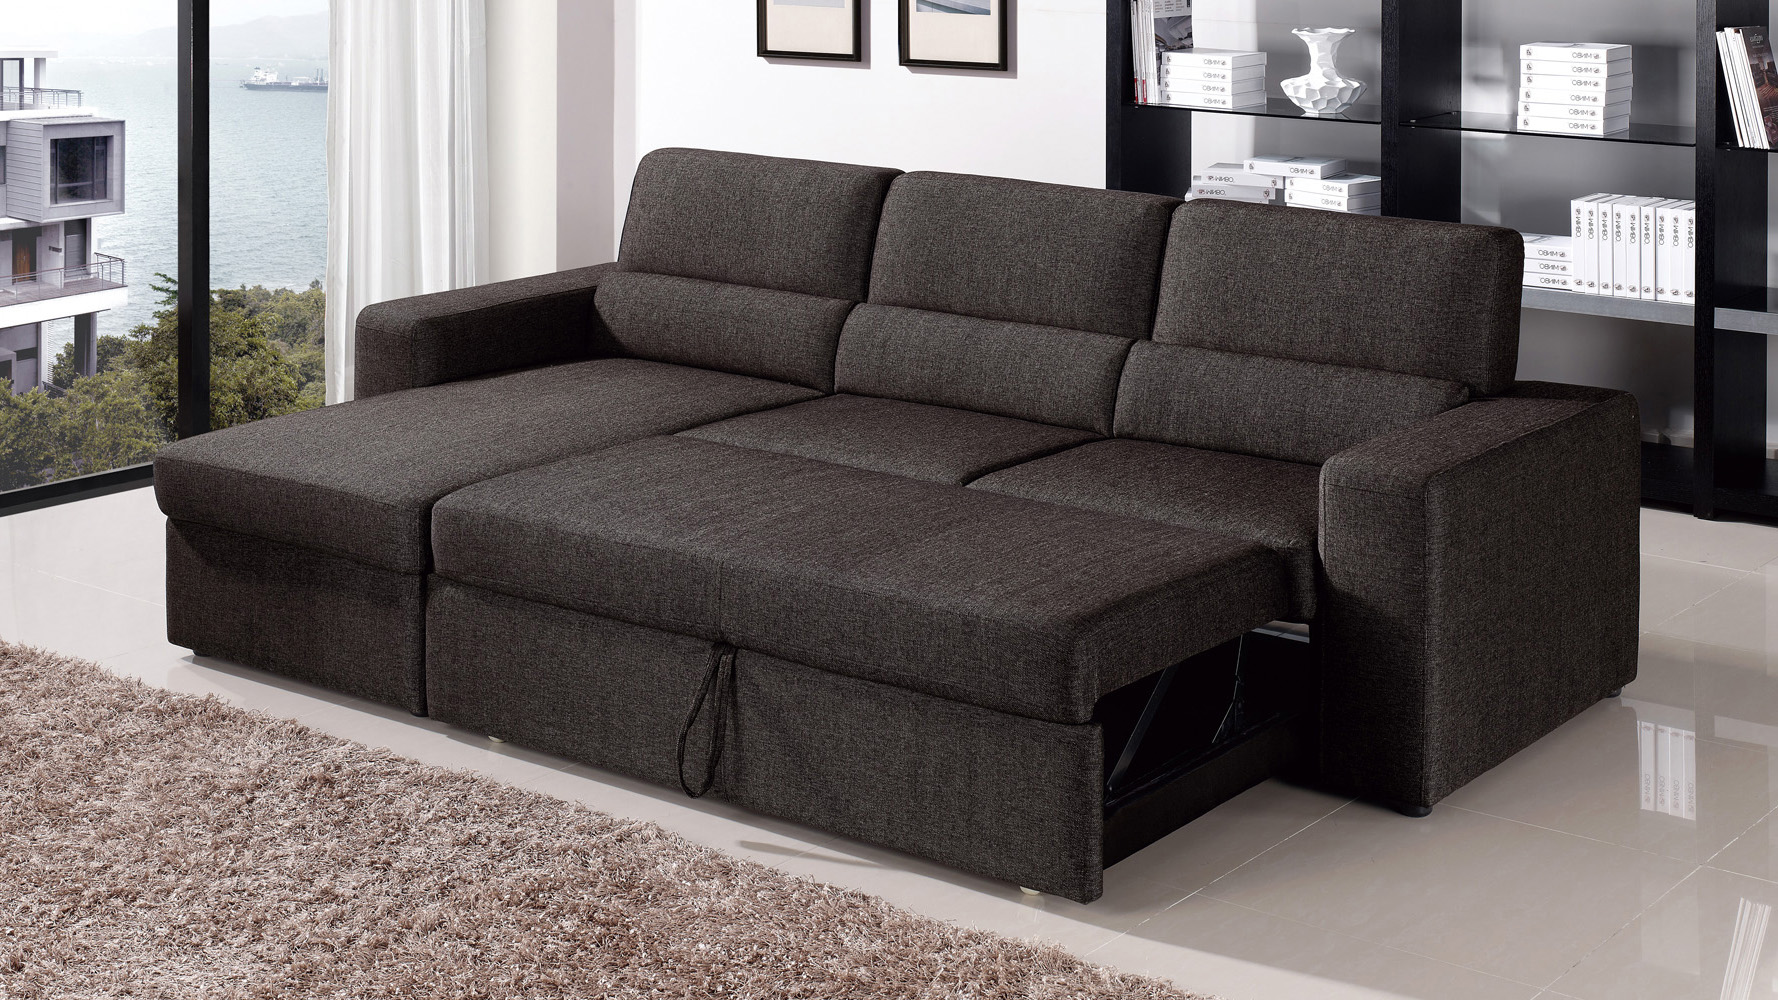 blackbrown clubber sleeper sectional sofa zuri furniture for sleeper sofa  set intended VBIGALC